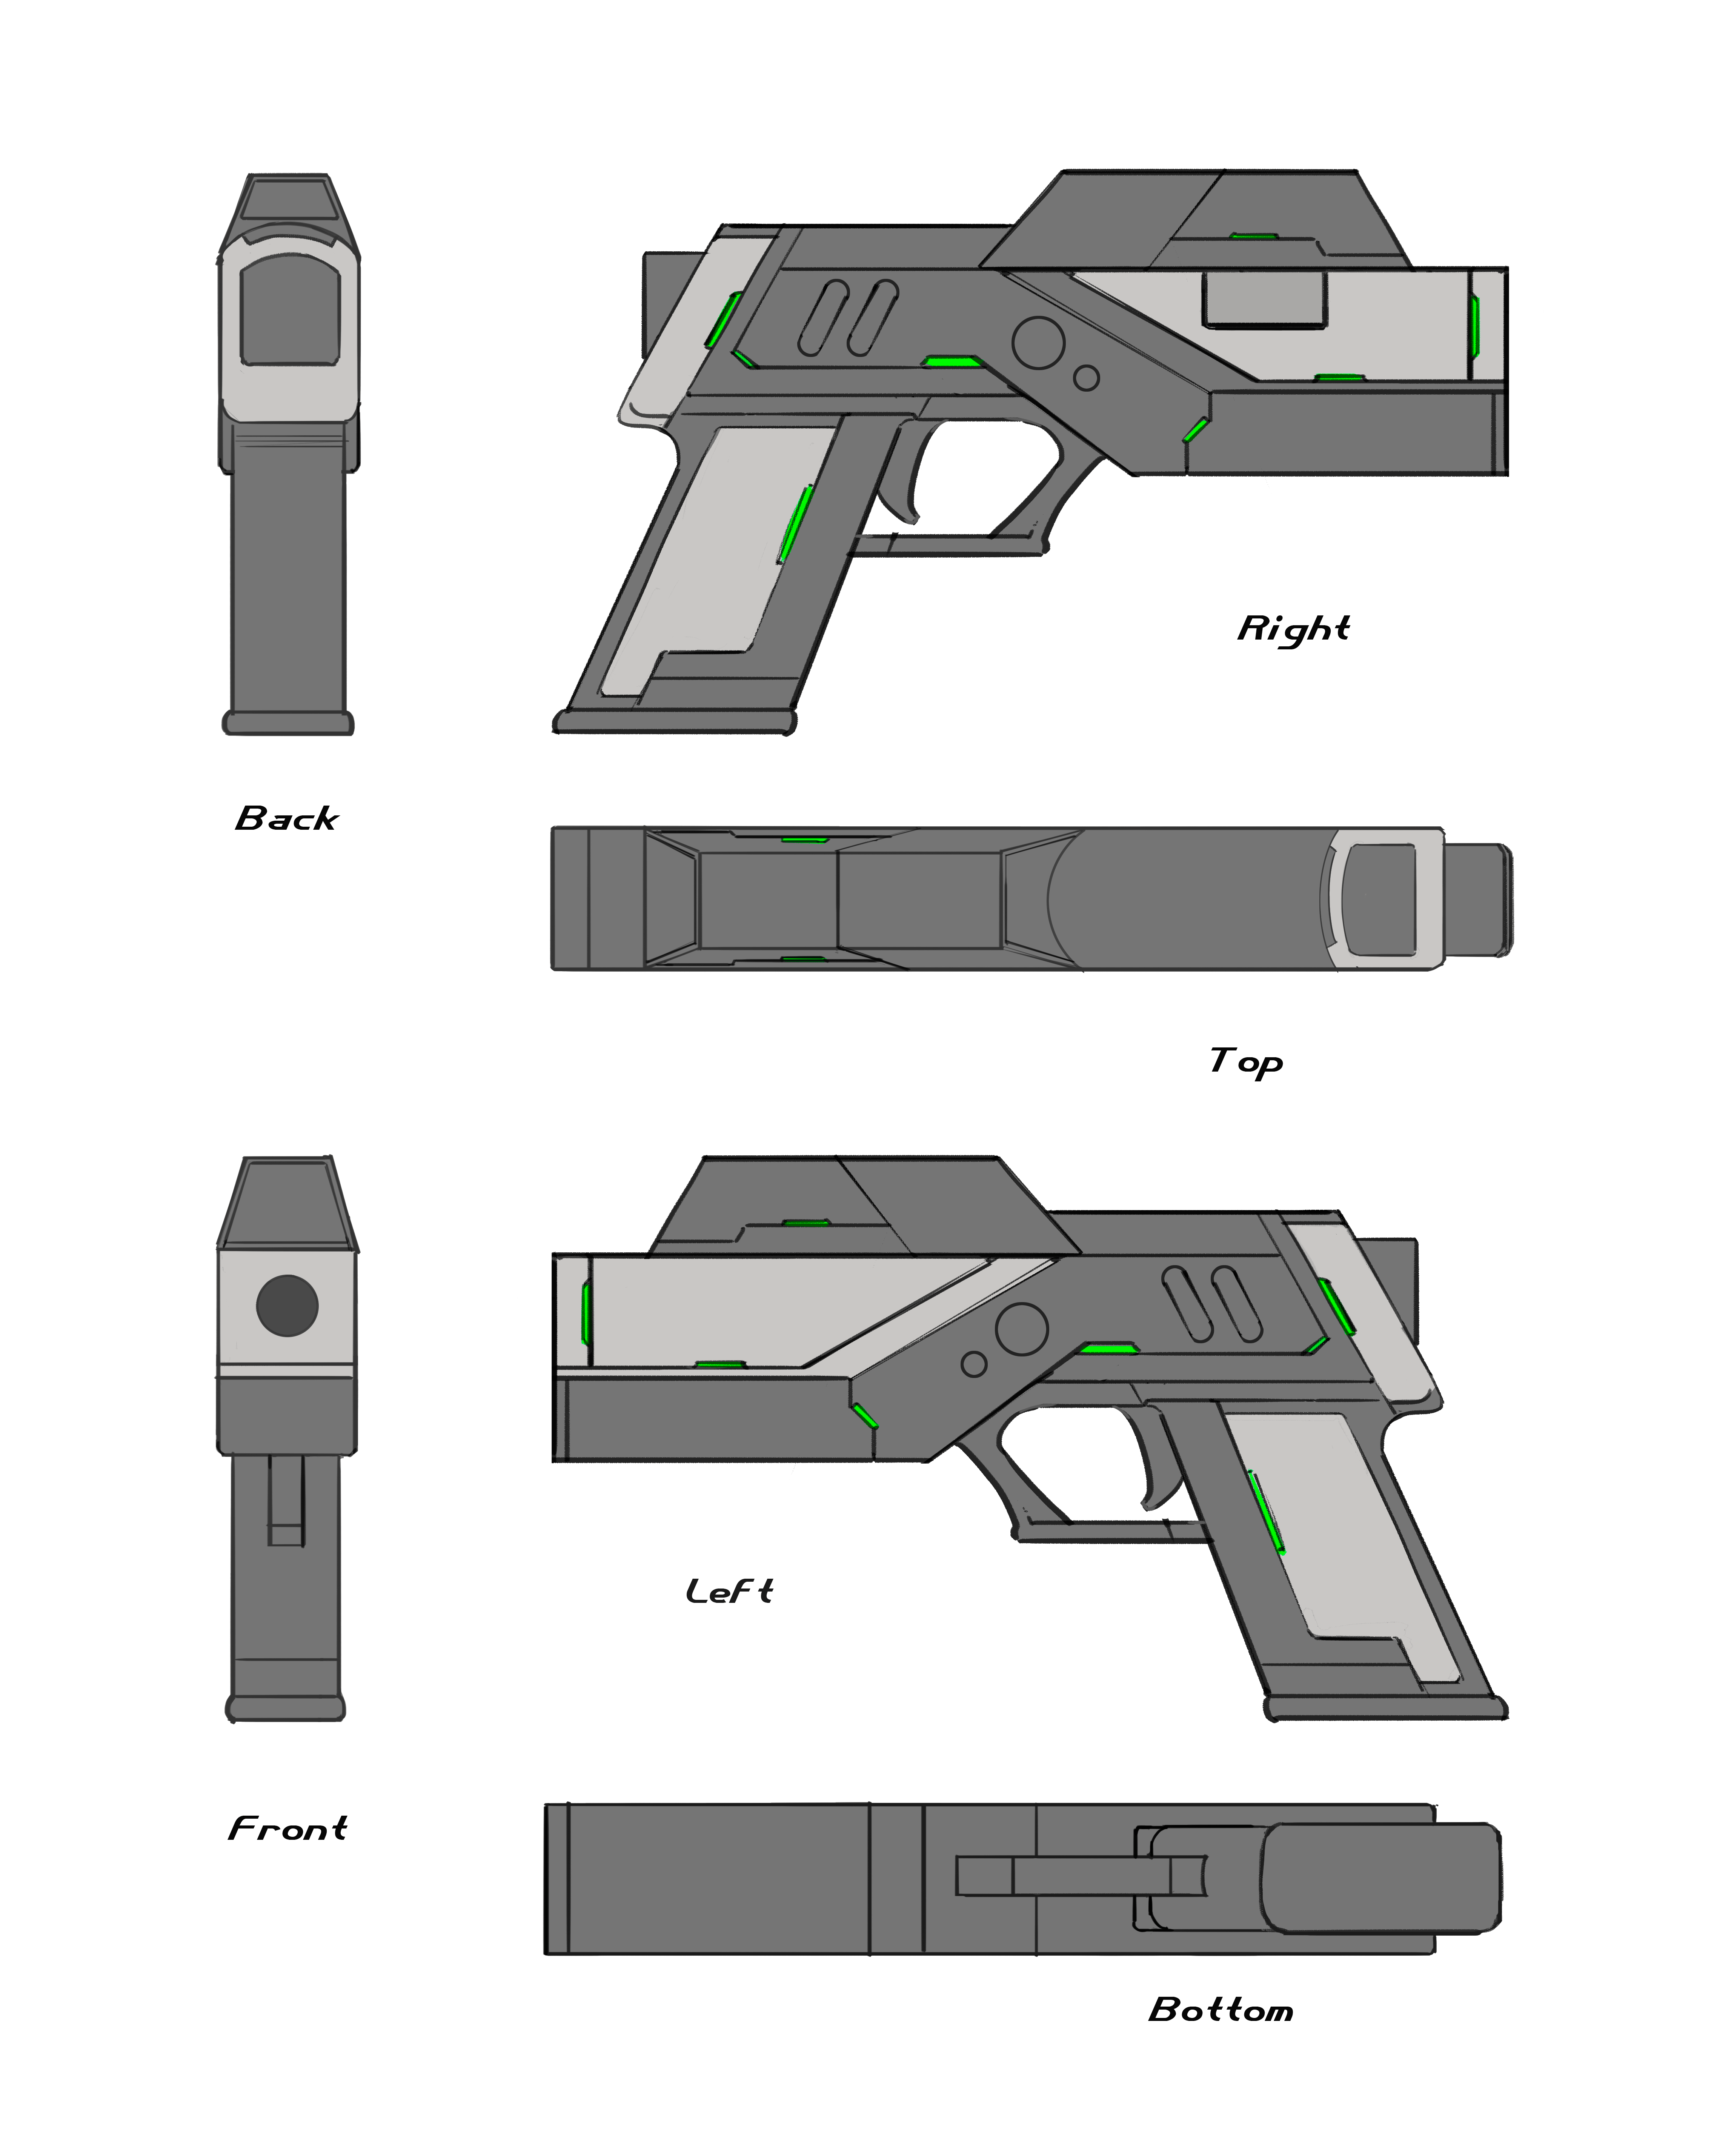 Another Pistol Concept Final Sheet Image